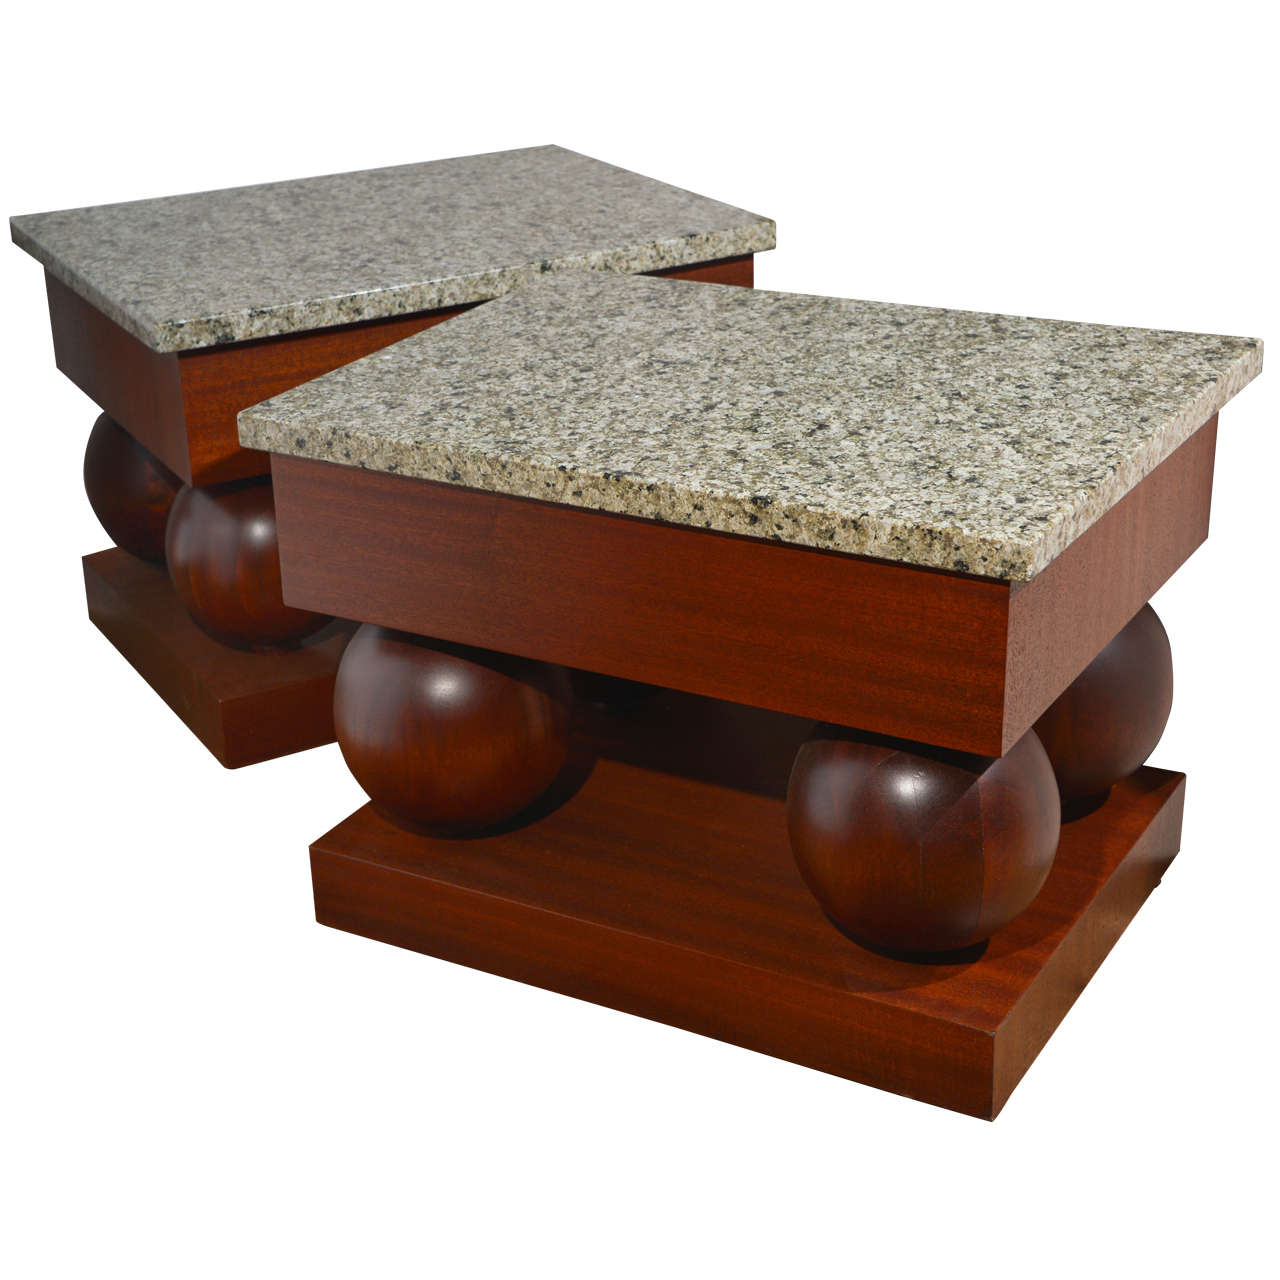 Stylish pair Modernist mid century modern mahogany and granite end tables